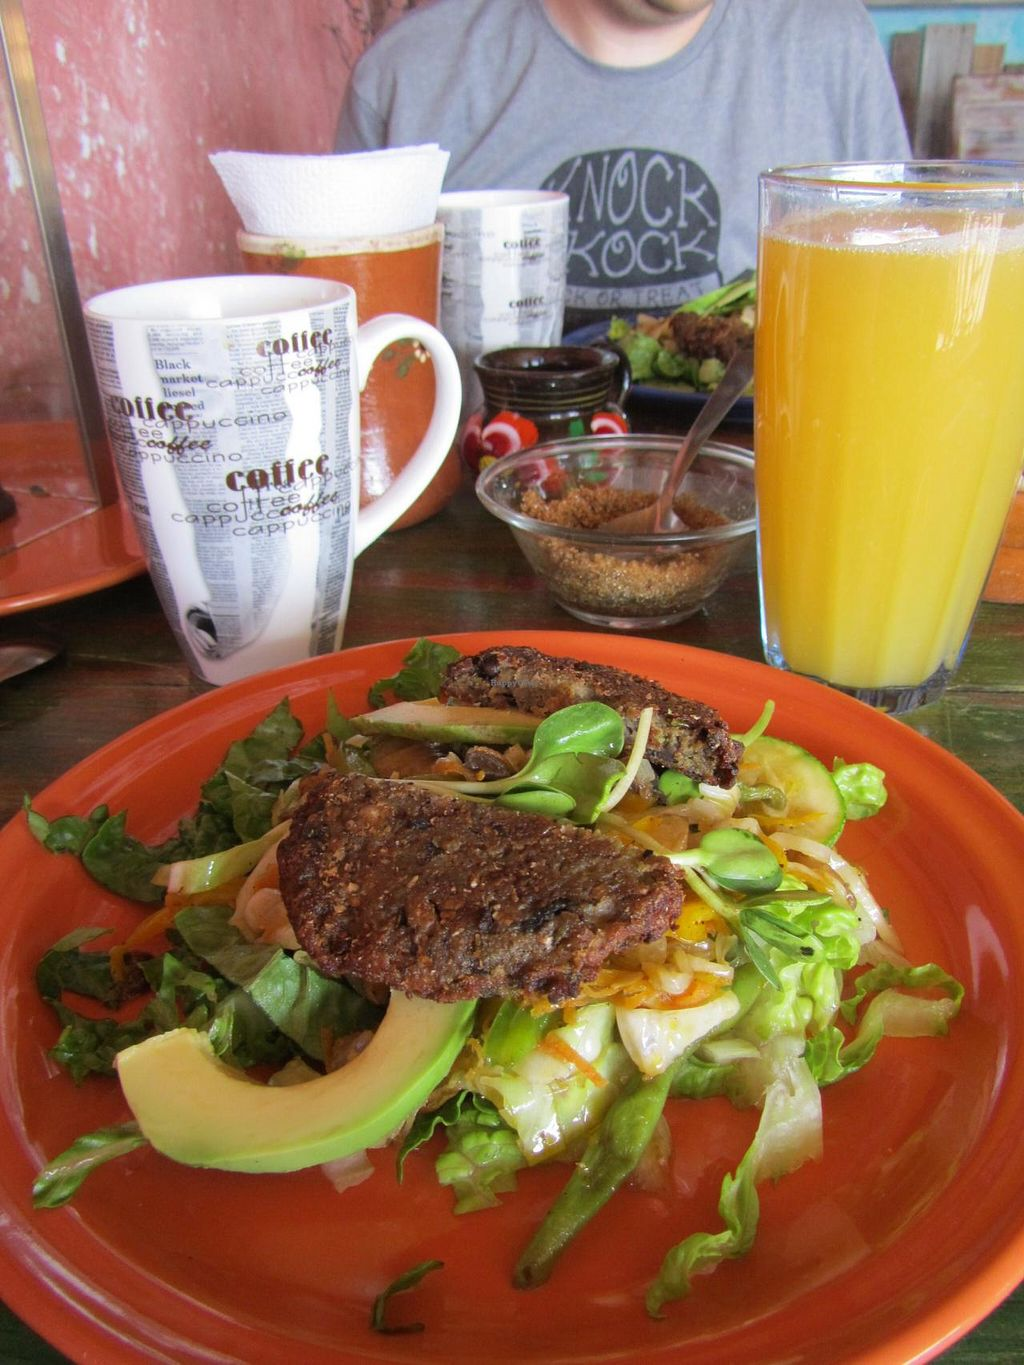 "Photo of El Vegetariano  by <a href=""/members/profile/BlisterBlue"">BlisterBlue</a> <br/>El Vegetariano in Tulum (Mexico) <br/> March 15, 2014  - <a href='/contact/abuse/image/45726/65979'>Report</a>"